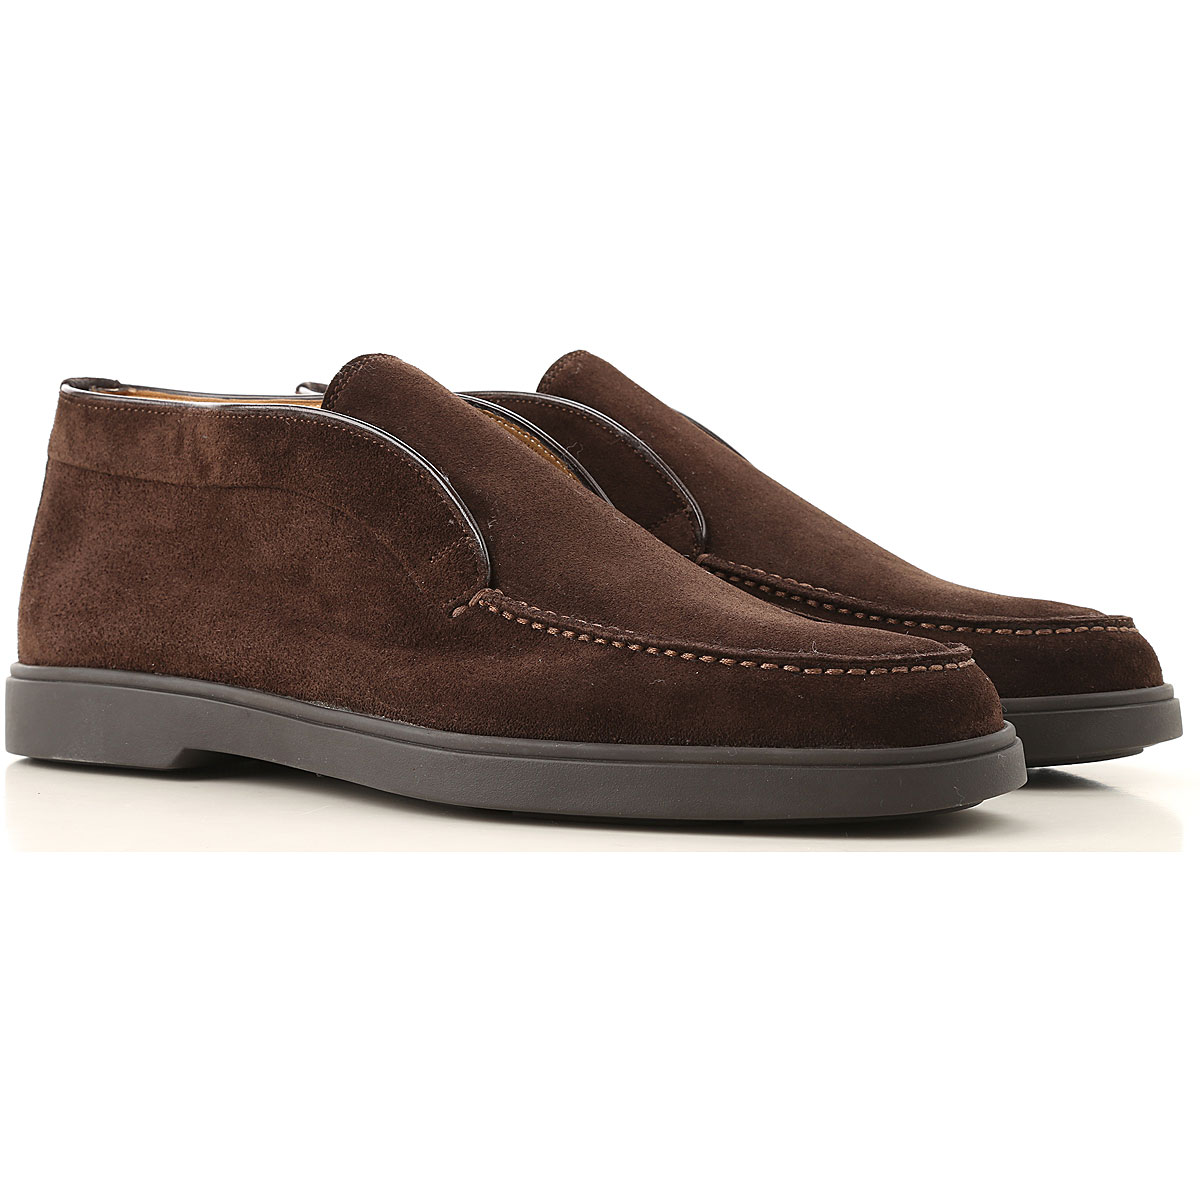 Santoni Desert Boots Chukka for Men On Sale, Dark Brown, Suede leather, 2019, 11 11.5 13 7